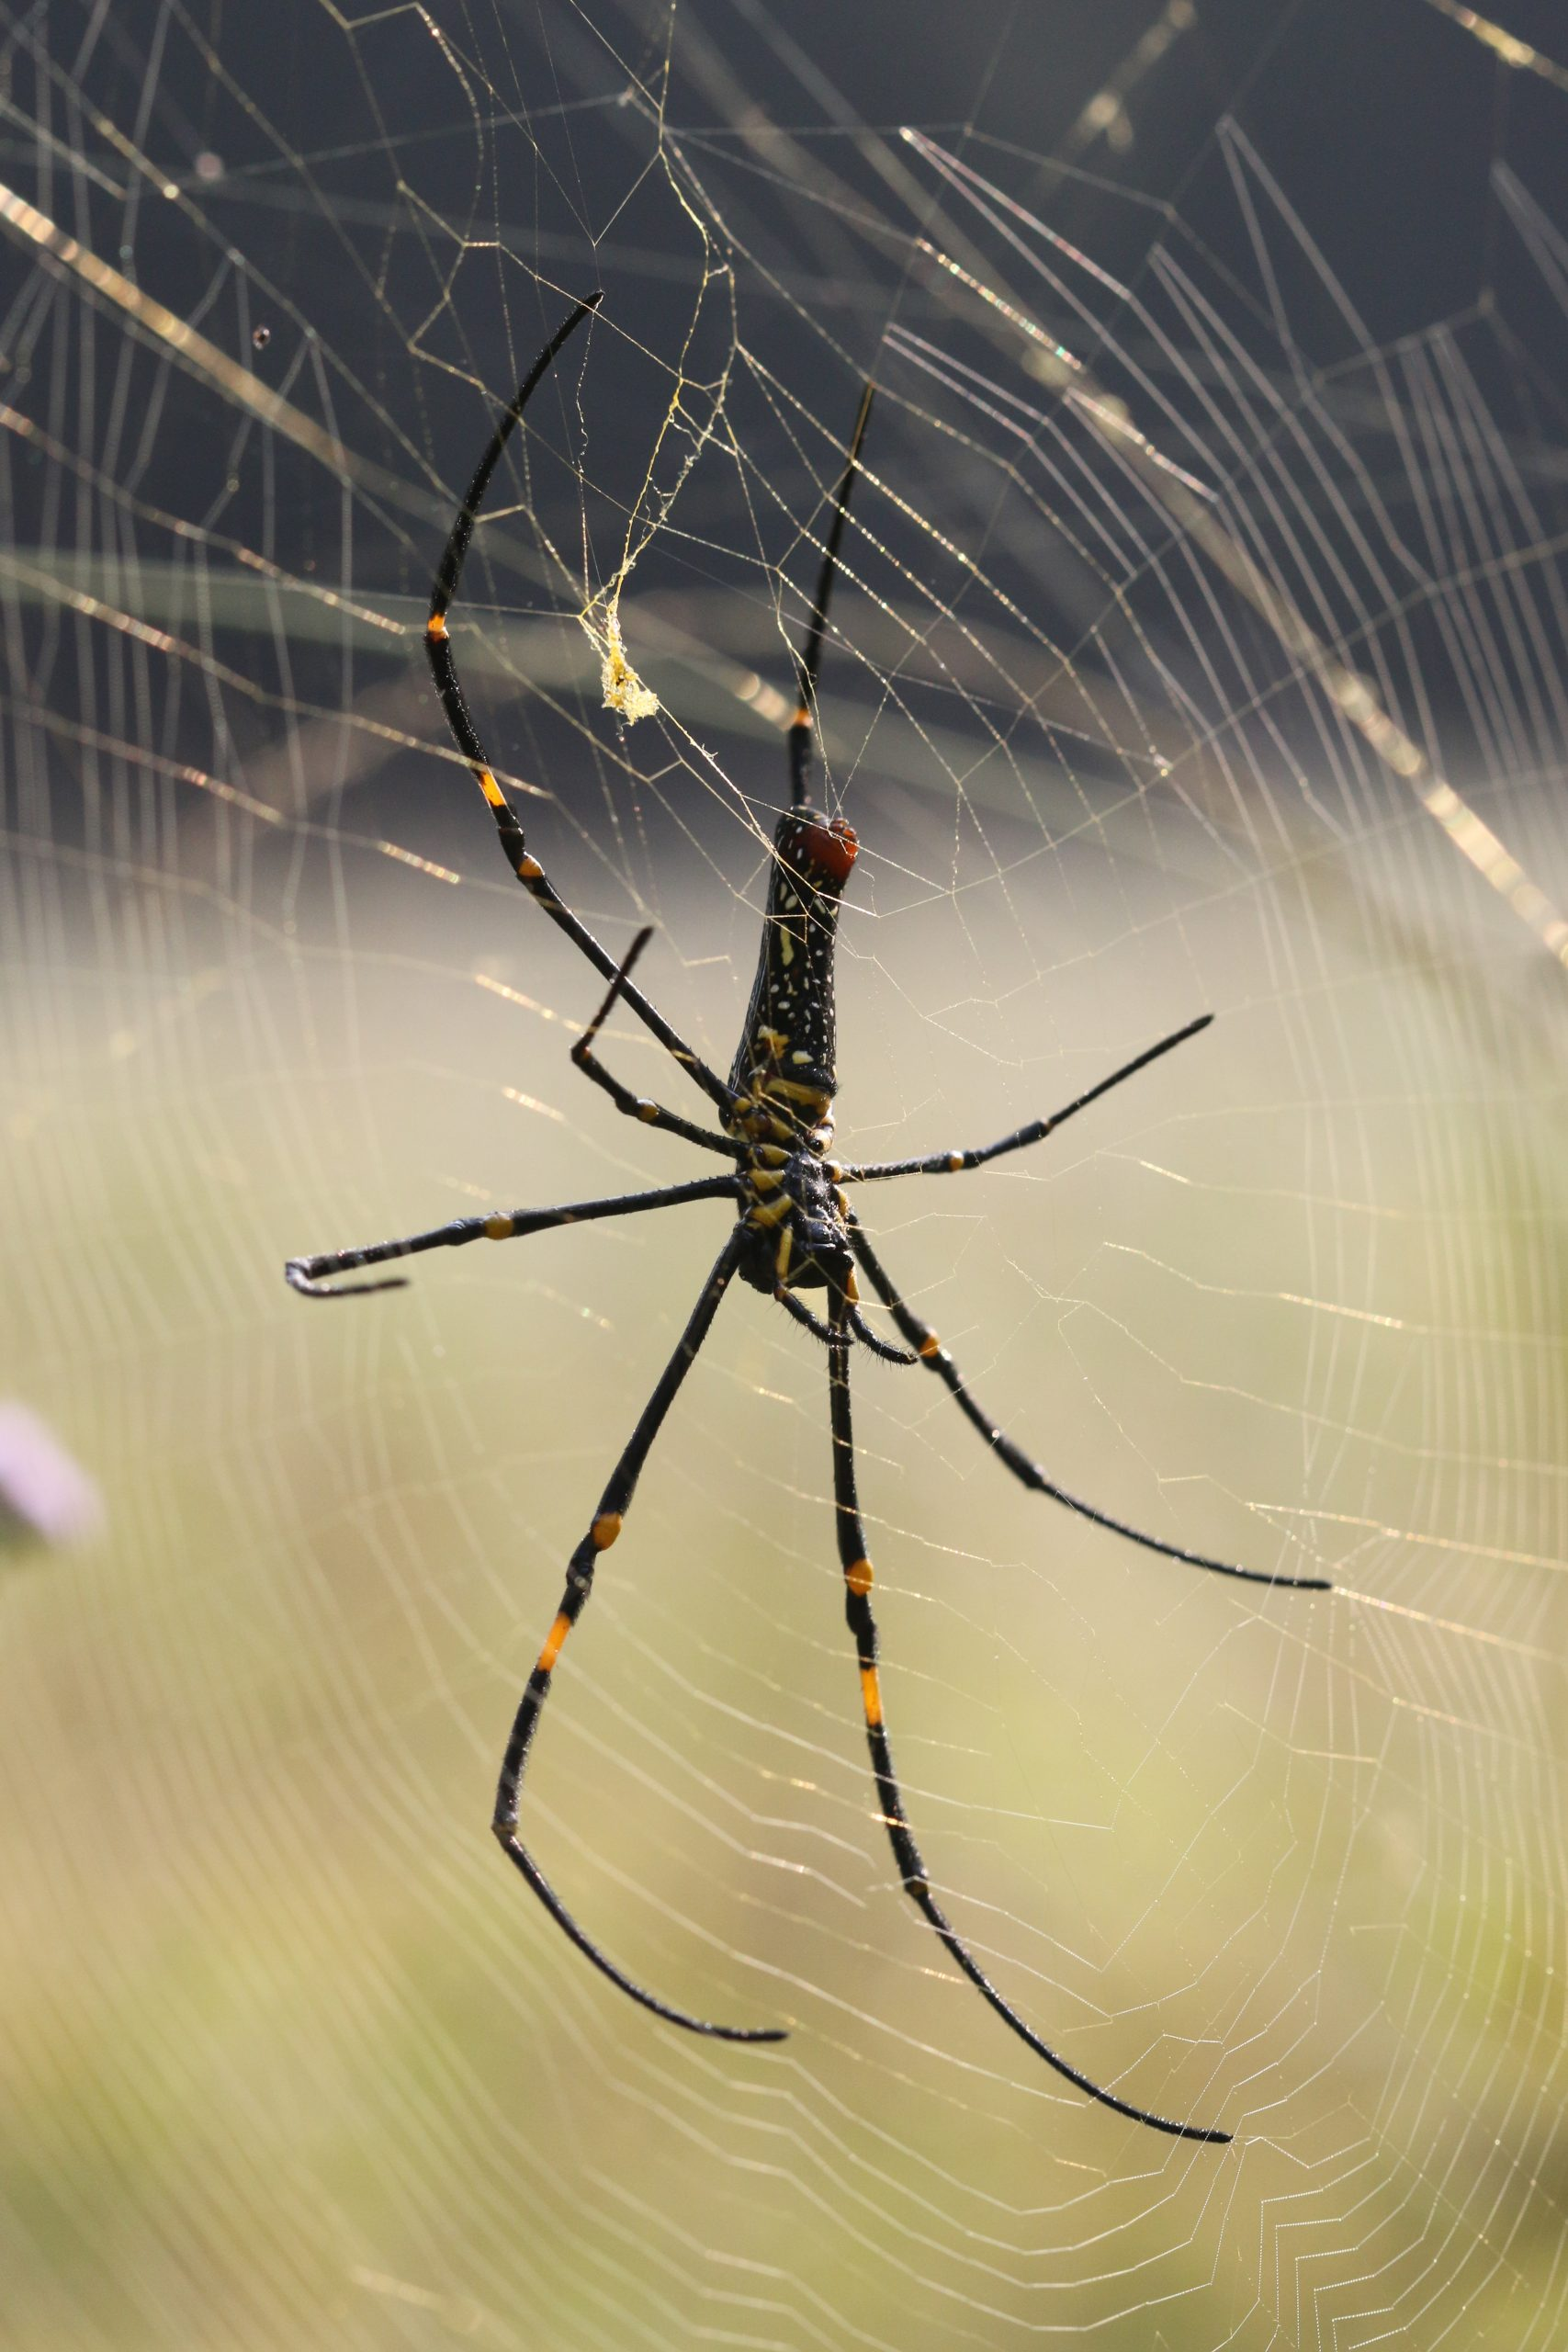 Giant Wood Spider on Focus